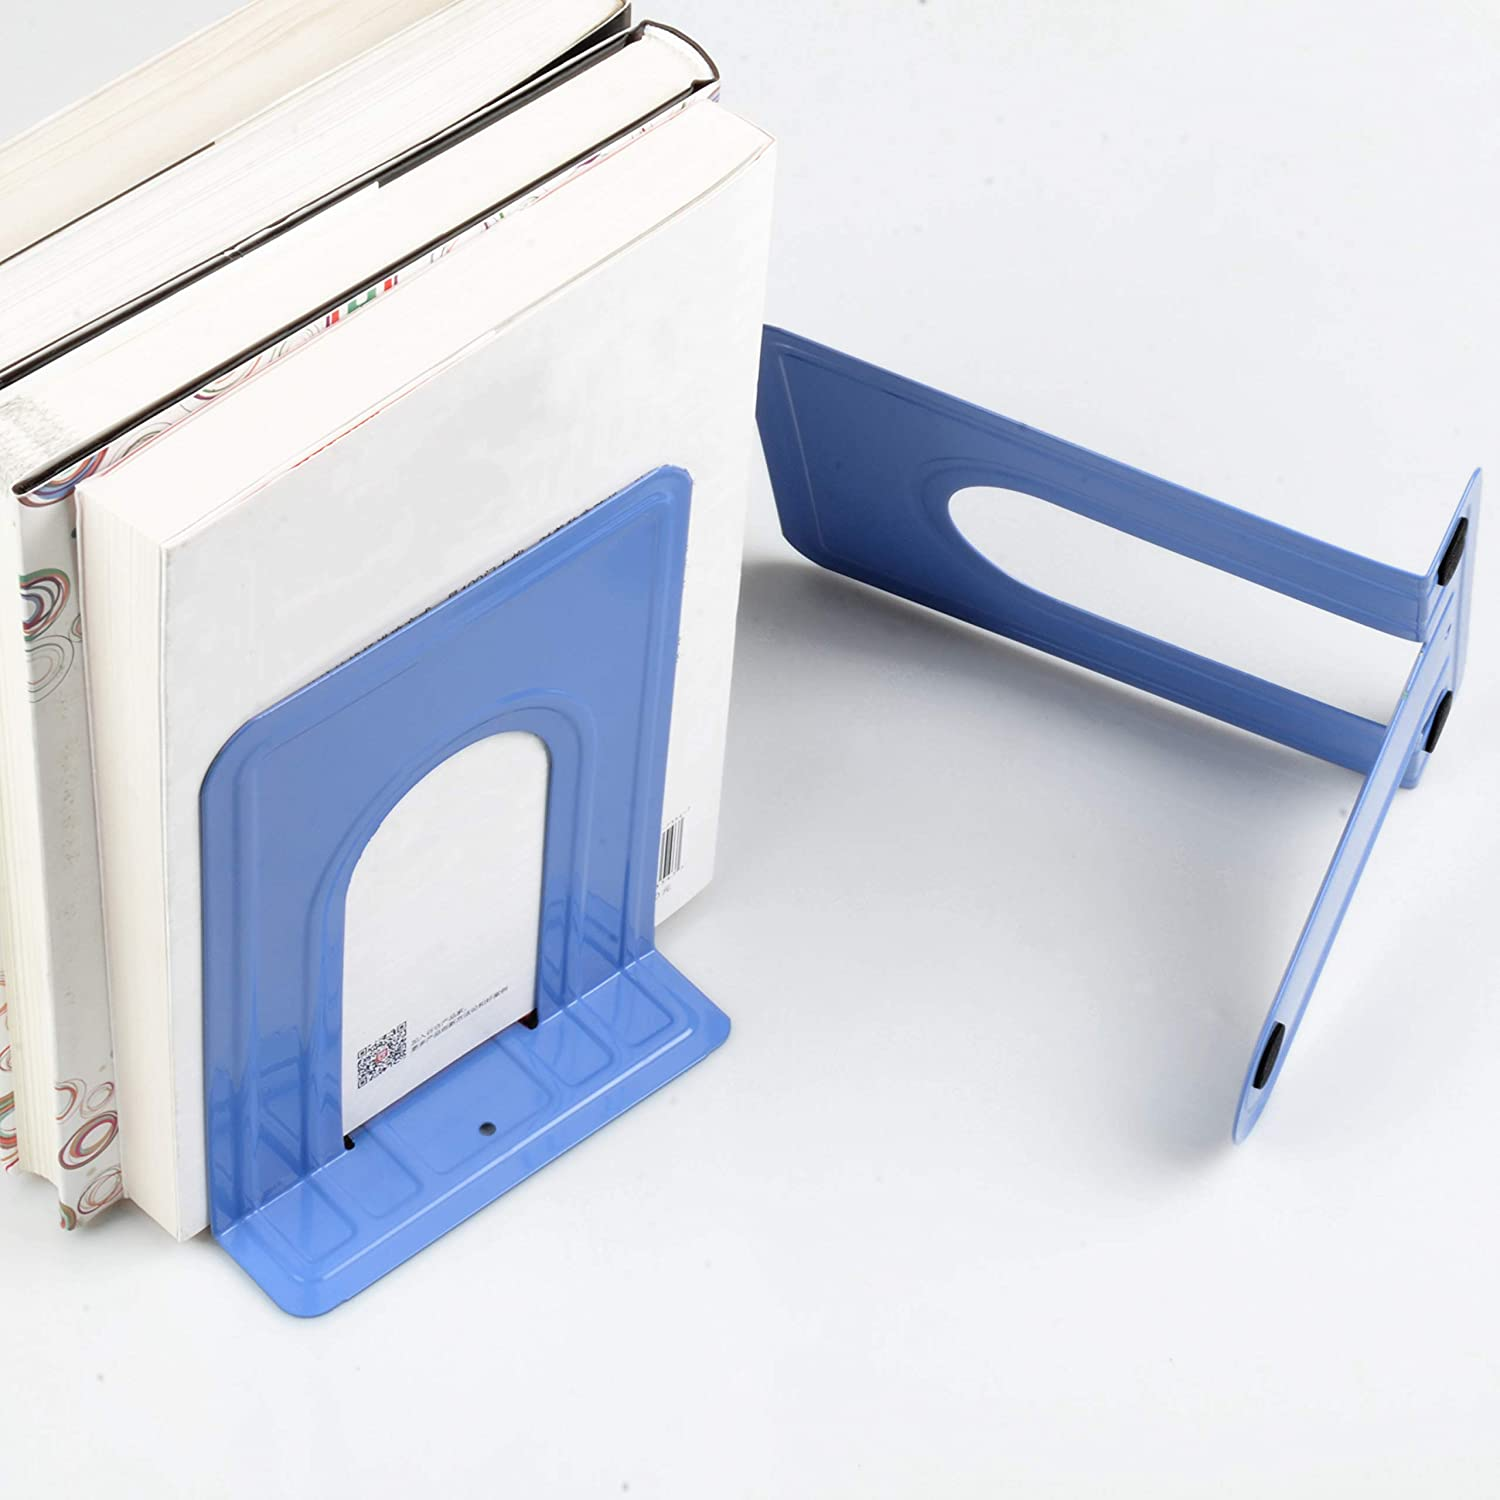 6 x 5 x 6 Inches,10 Pieces Nonskid Metal Bookend Supports for Shelves Office Book Stopper Heavy Duty Books End Blue 5 Pairs Bookends